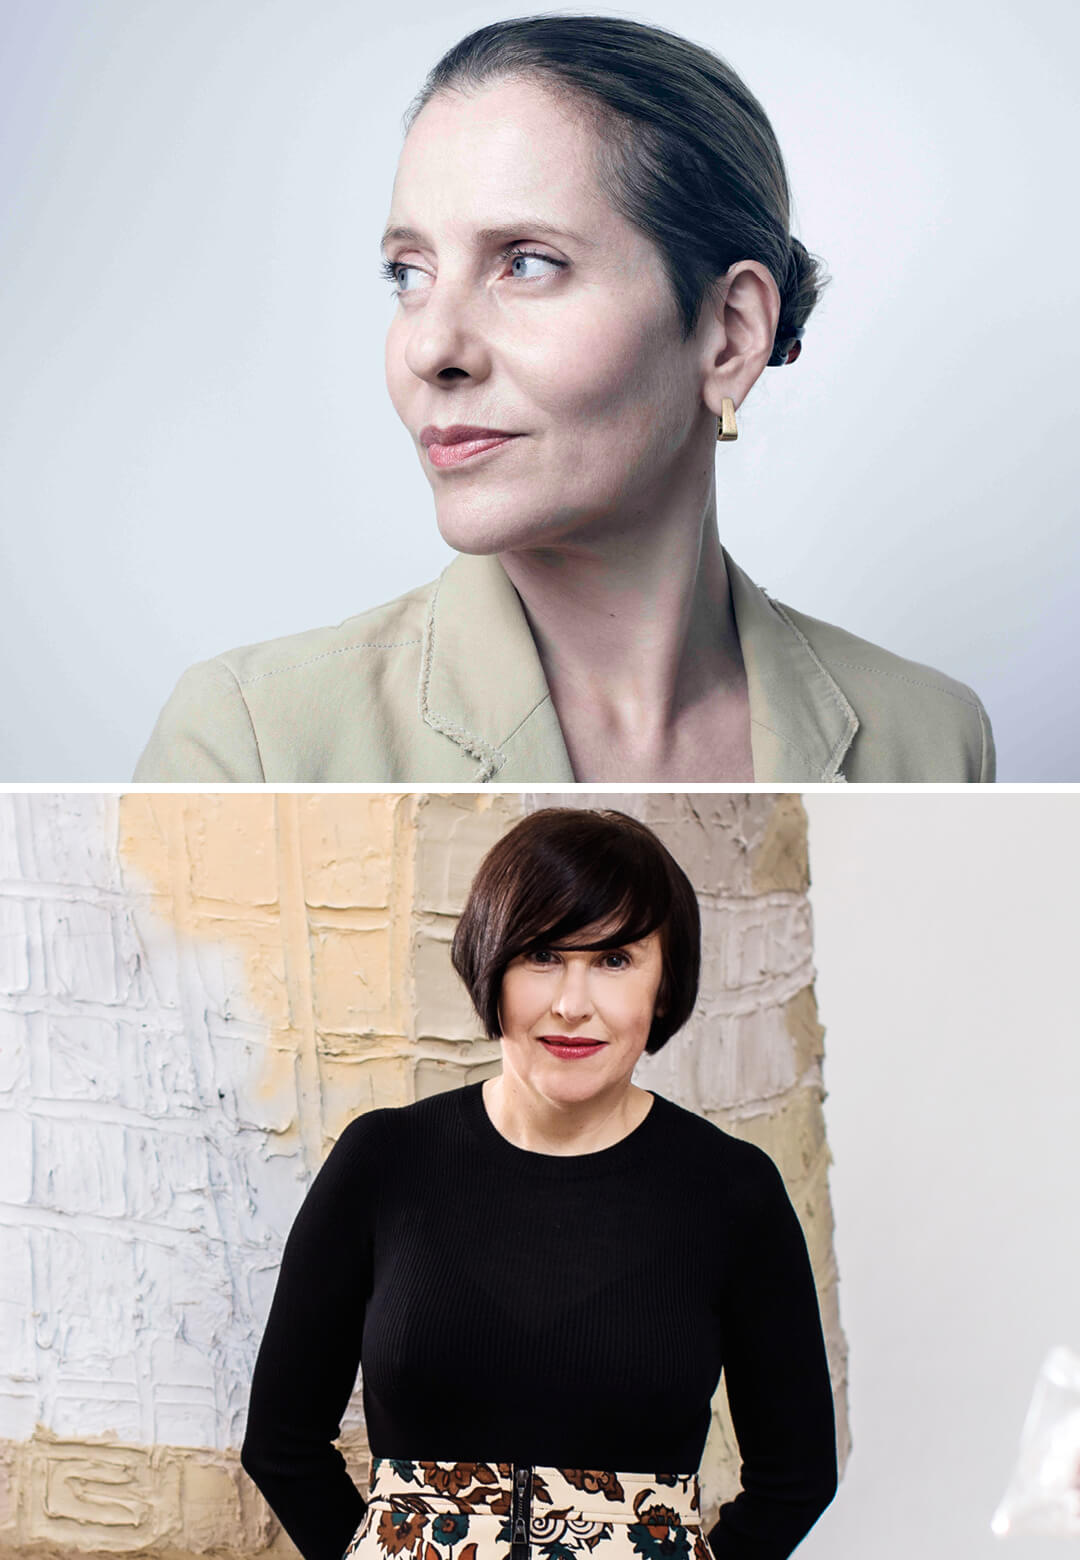 Curators of the Design Emergency Initiative – Left: Alice Rawsthorn, Right: Paola Antonelli | Alice Rawsthorn and Paola Antonelli | Design Emergency| STIRworld